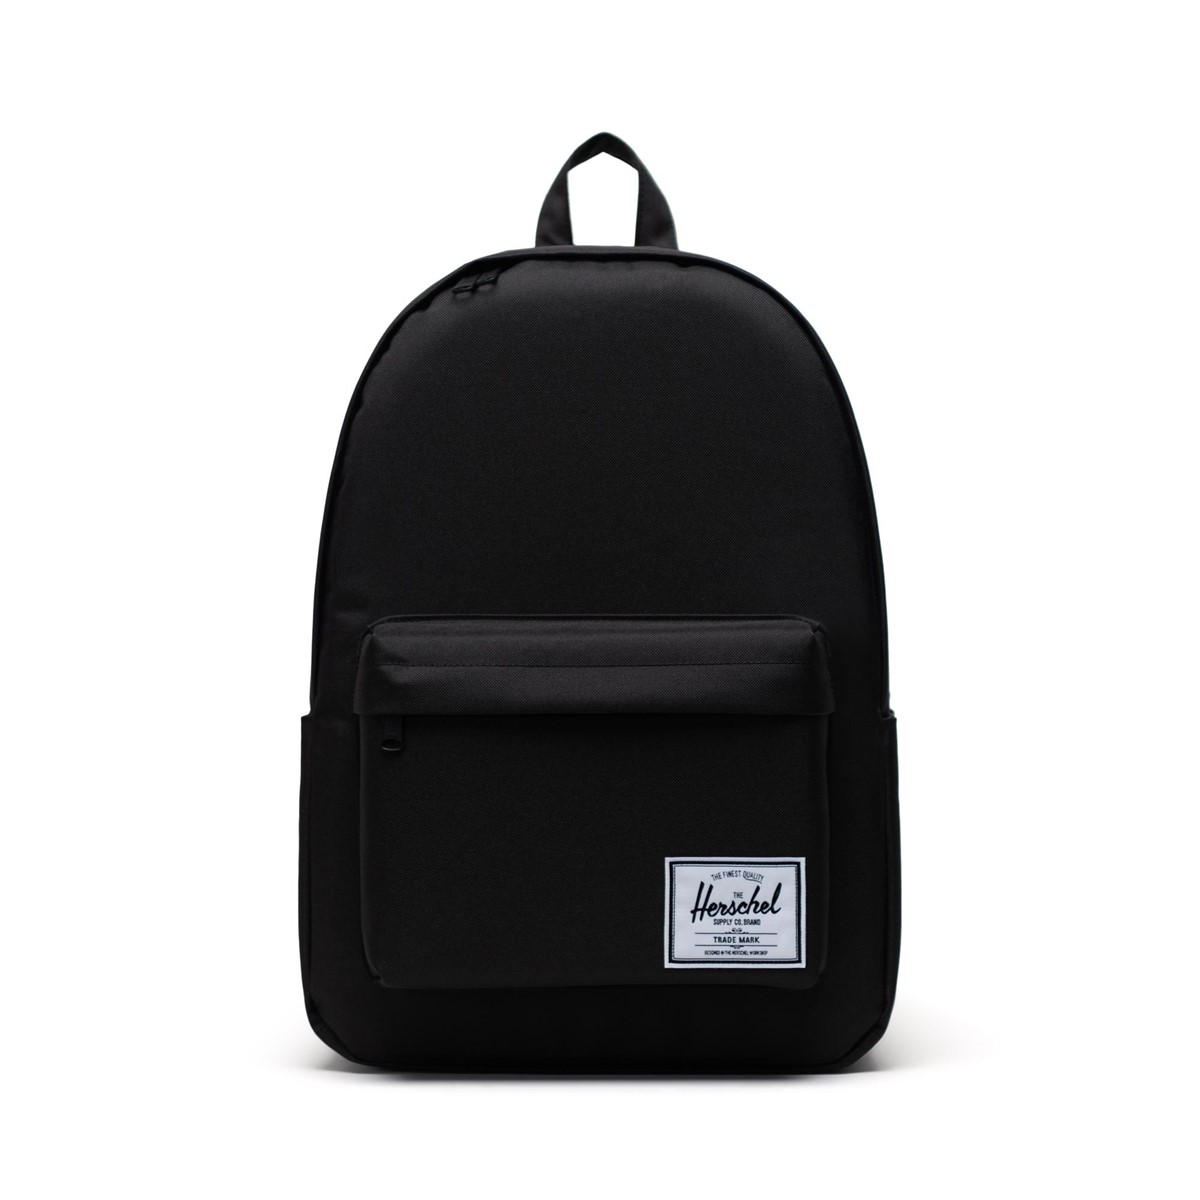 Eco Classic XL Backpack in Black